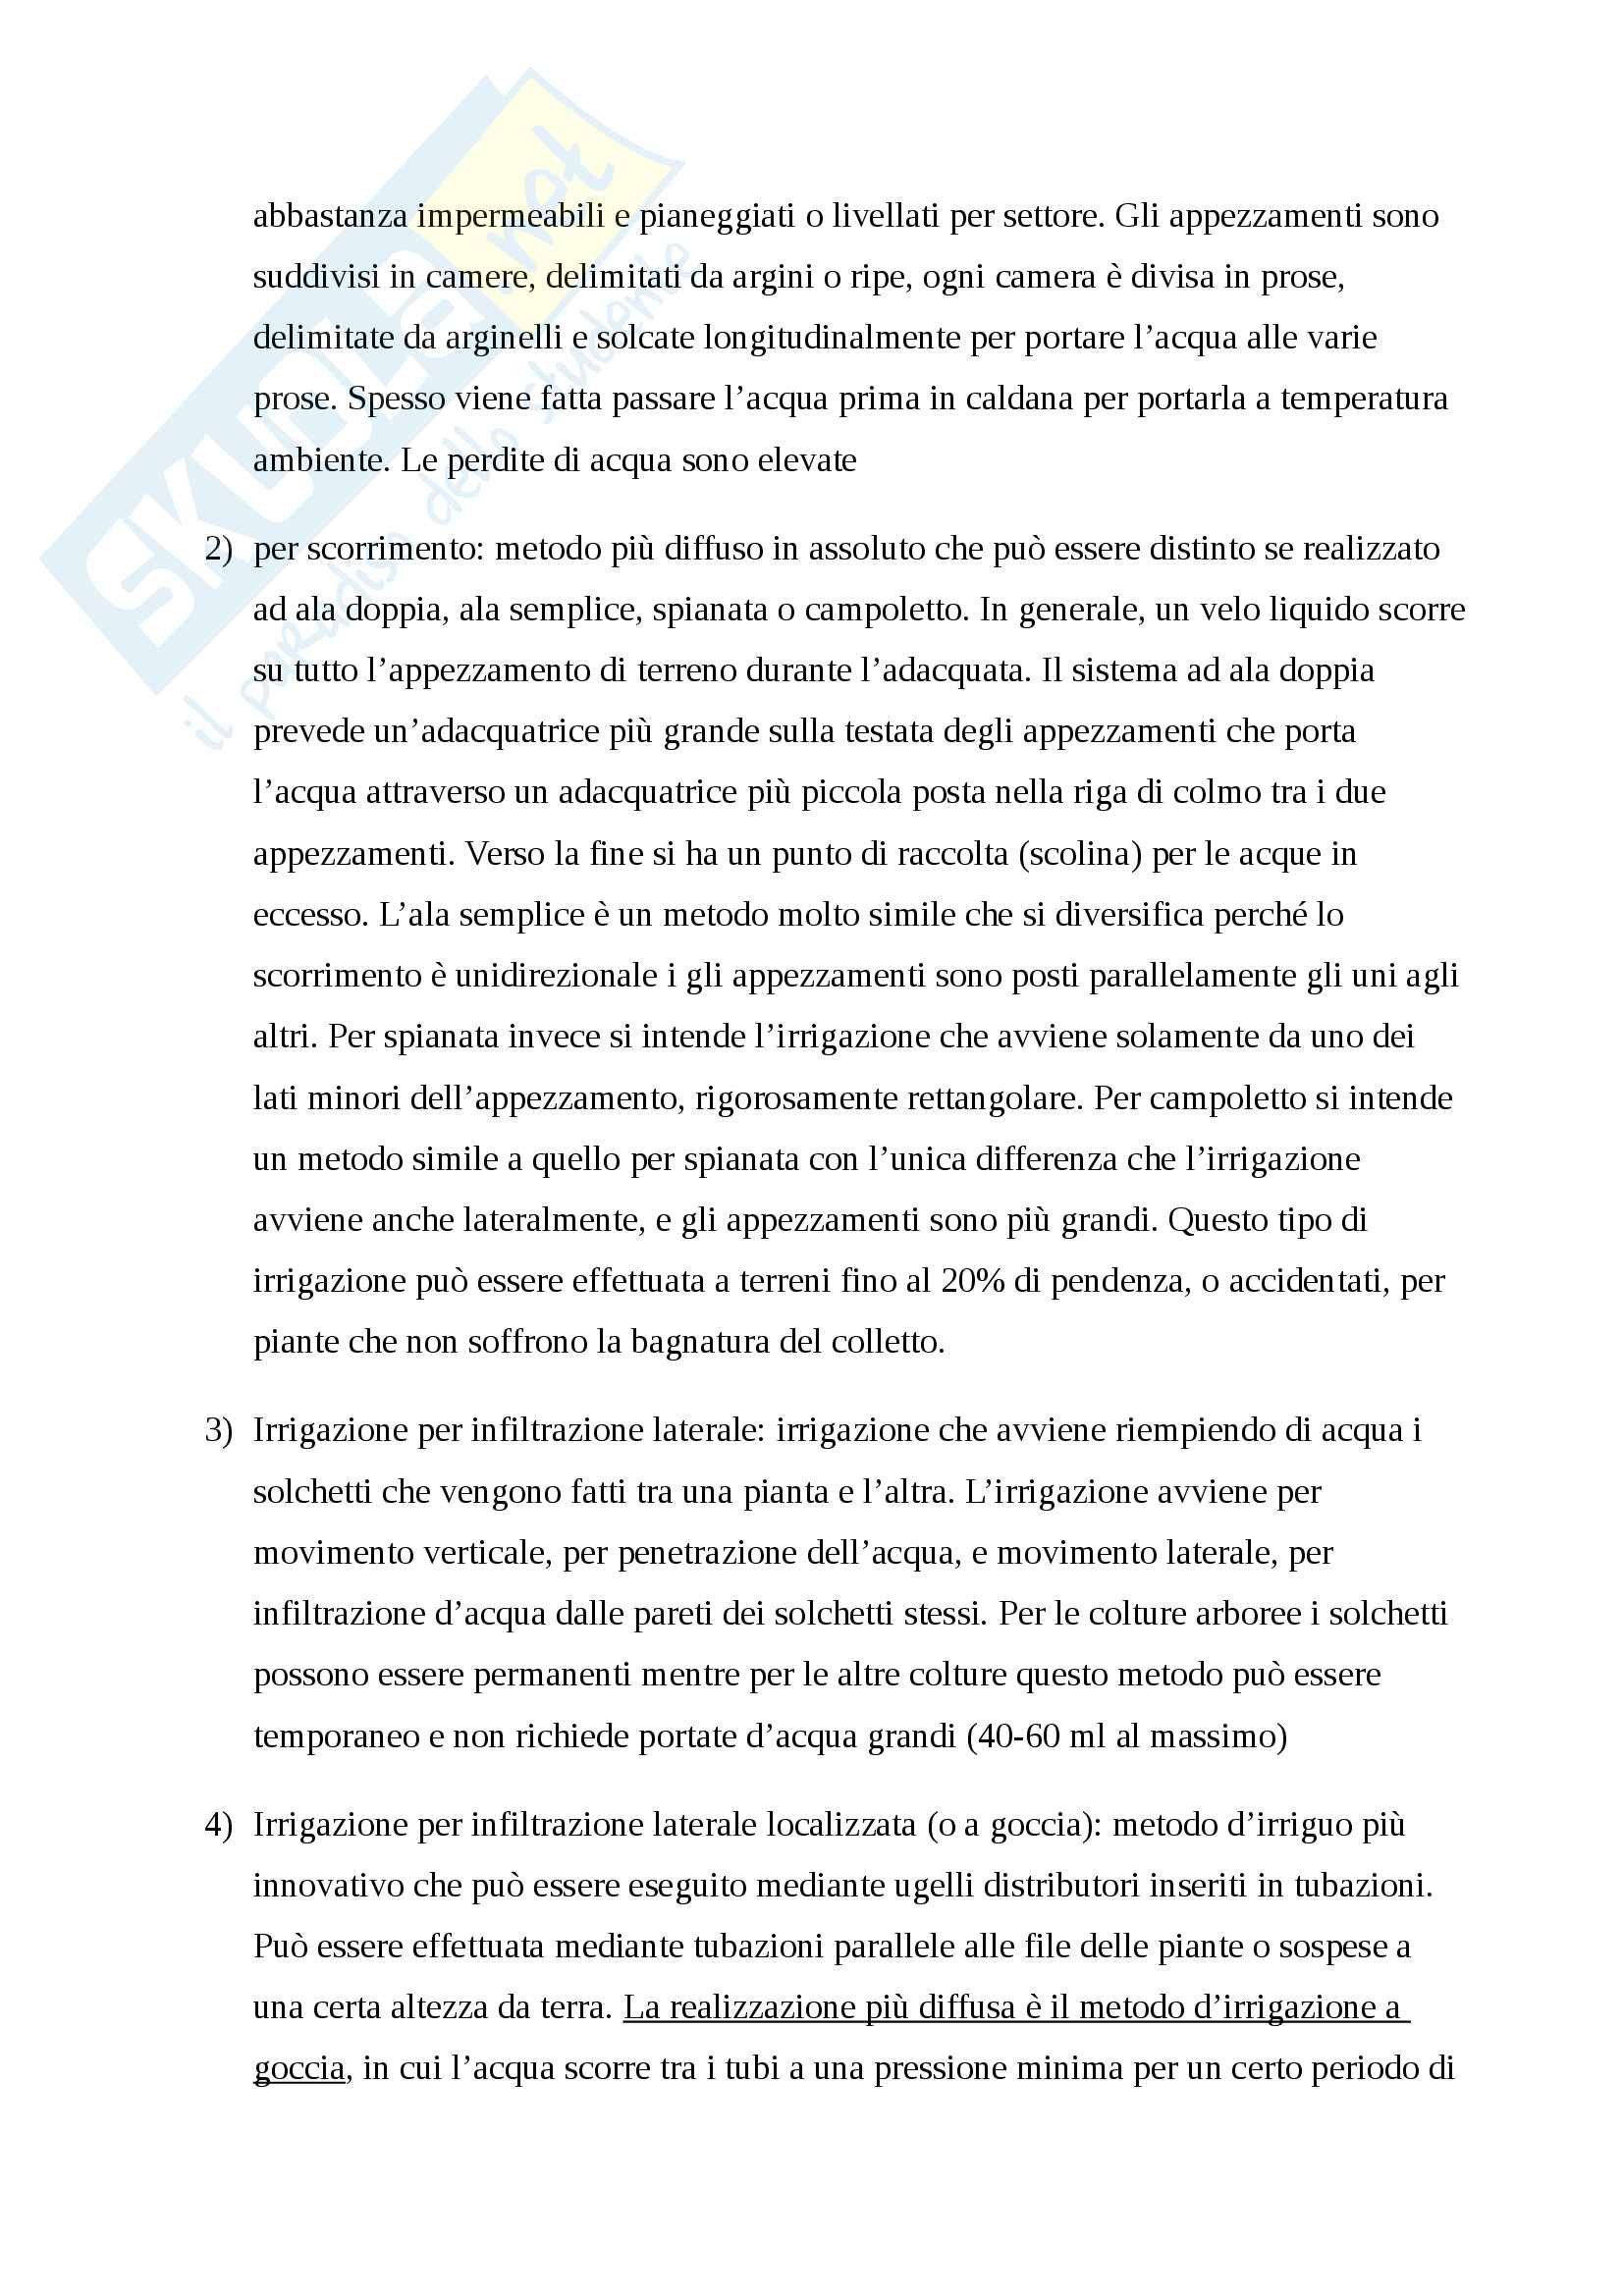 Agronomia Generale Pag. 16